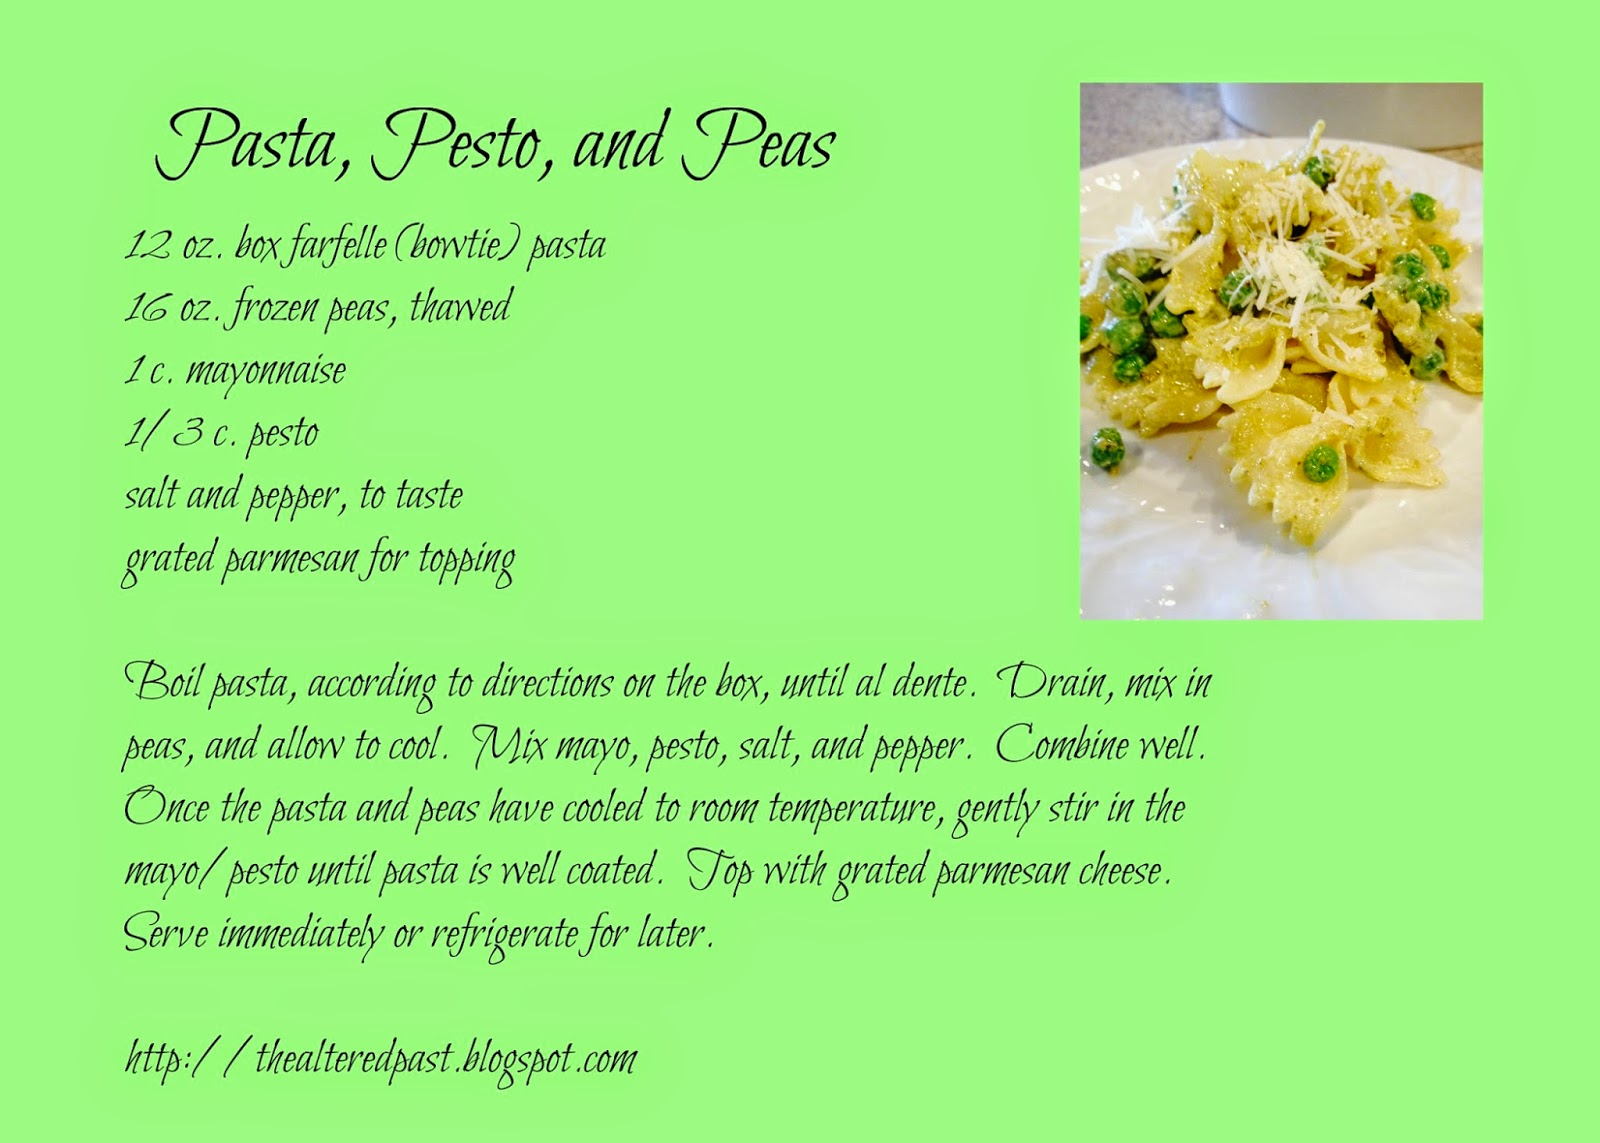 pasta-pesto-and-peas-recipe